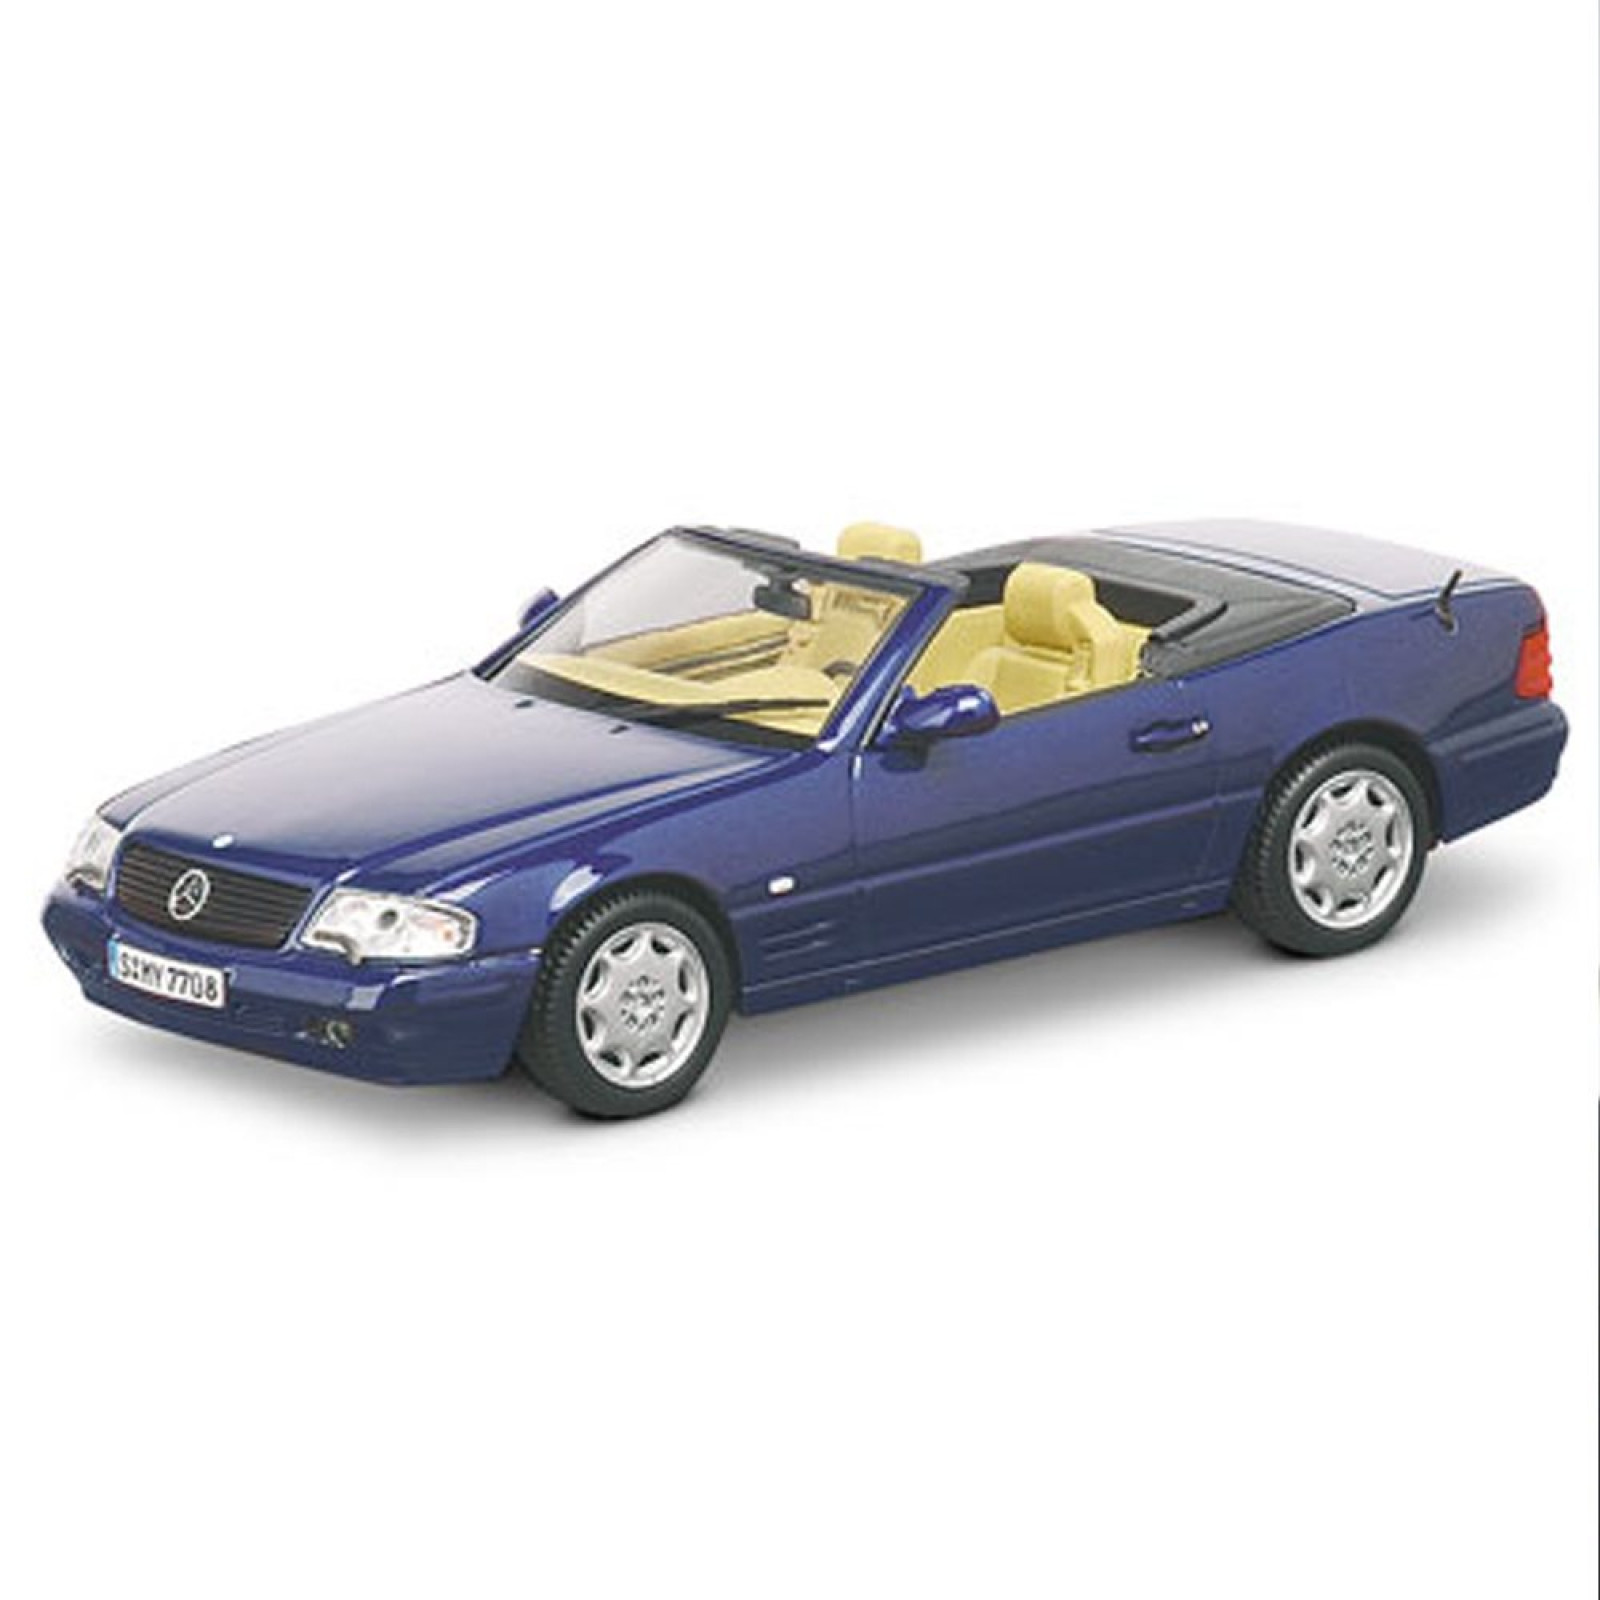 Mercedes benz 1998 39 01 r129 500sl 1 43 scale diecast model for Mercedes benz 500sl parts